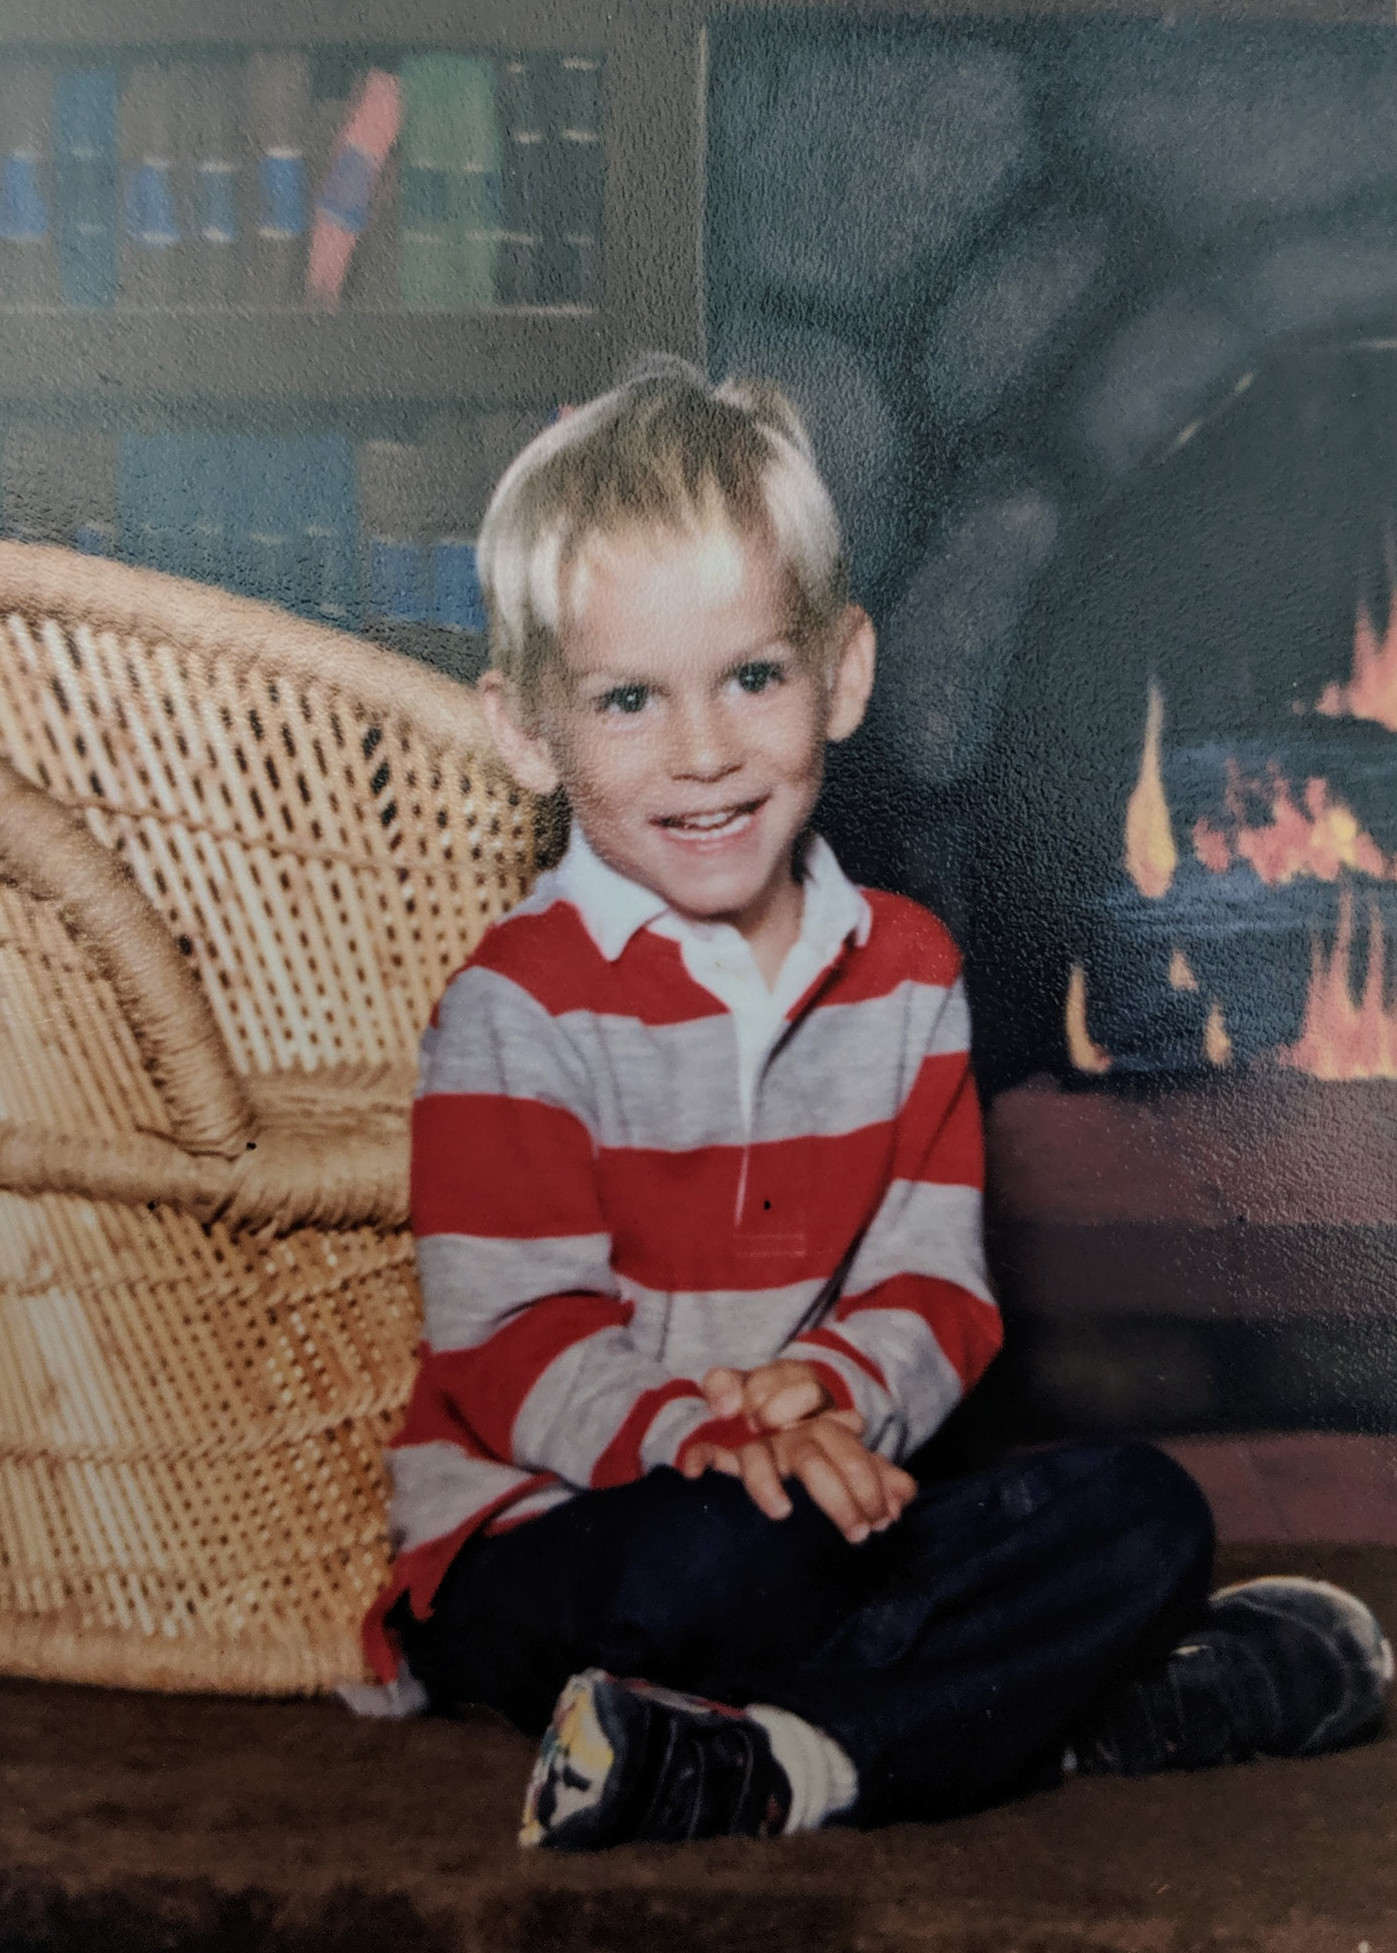 Chad Smith, age 4